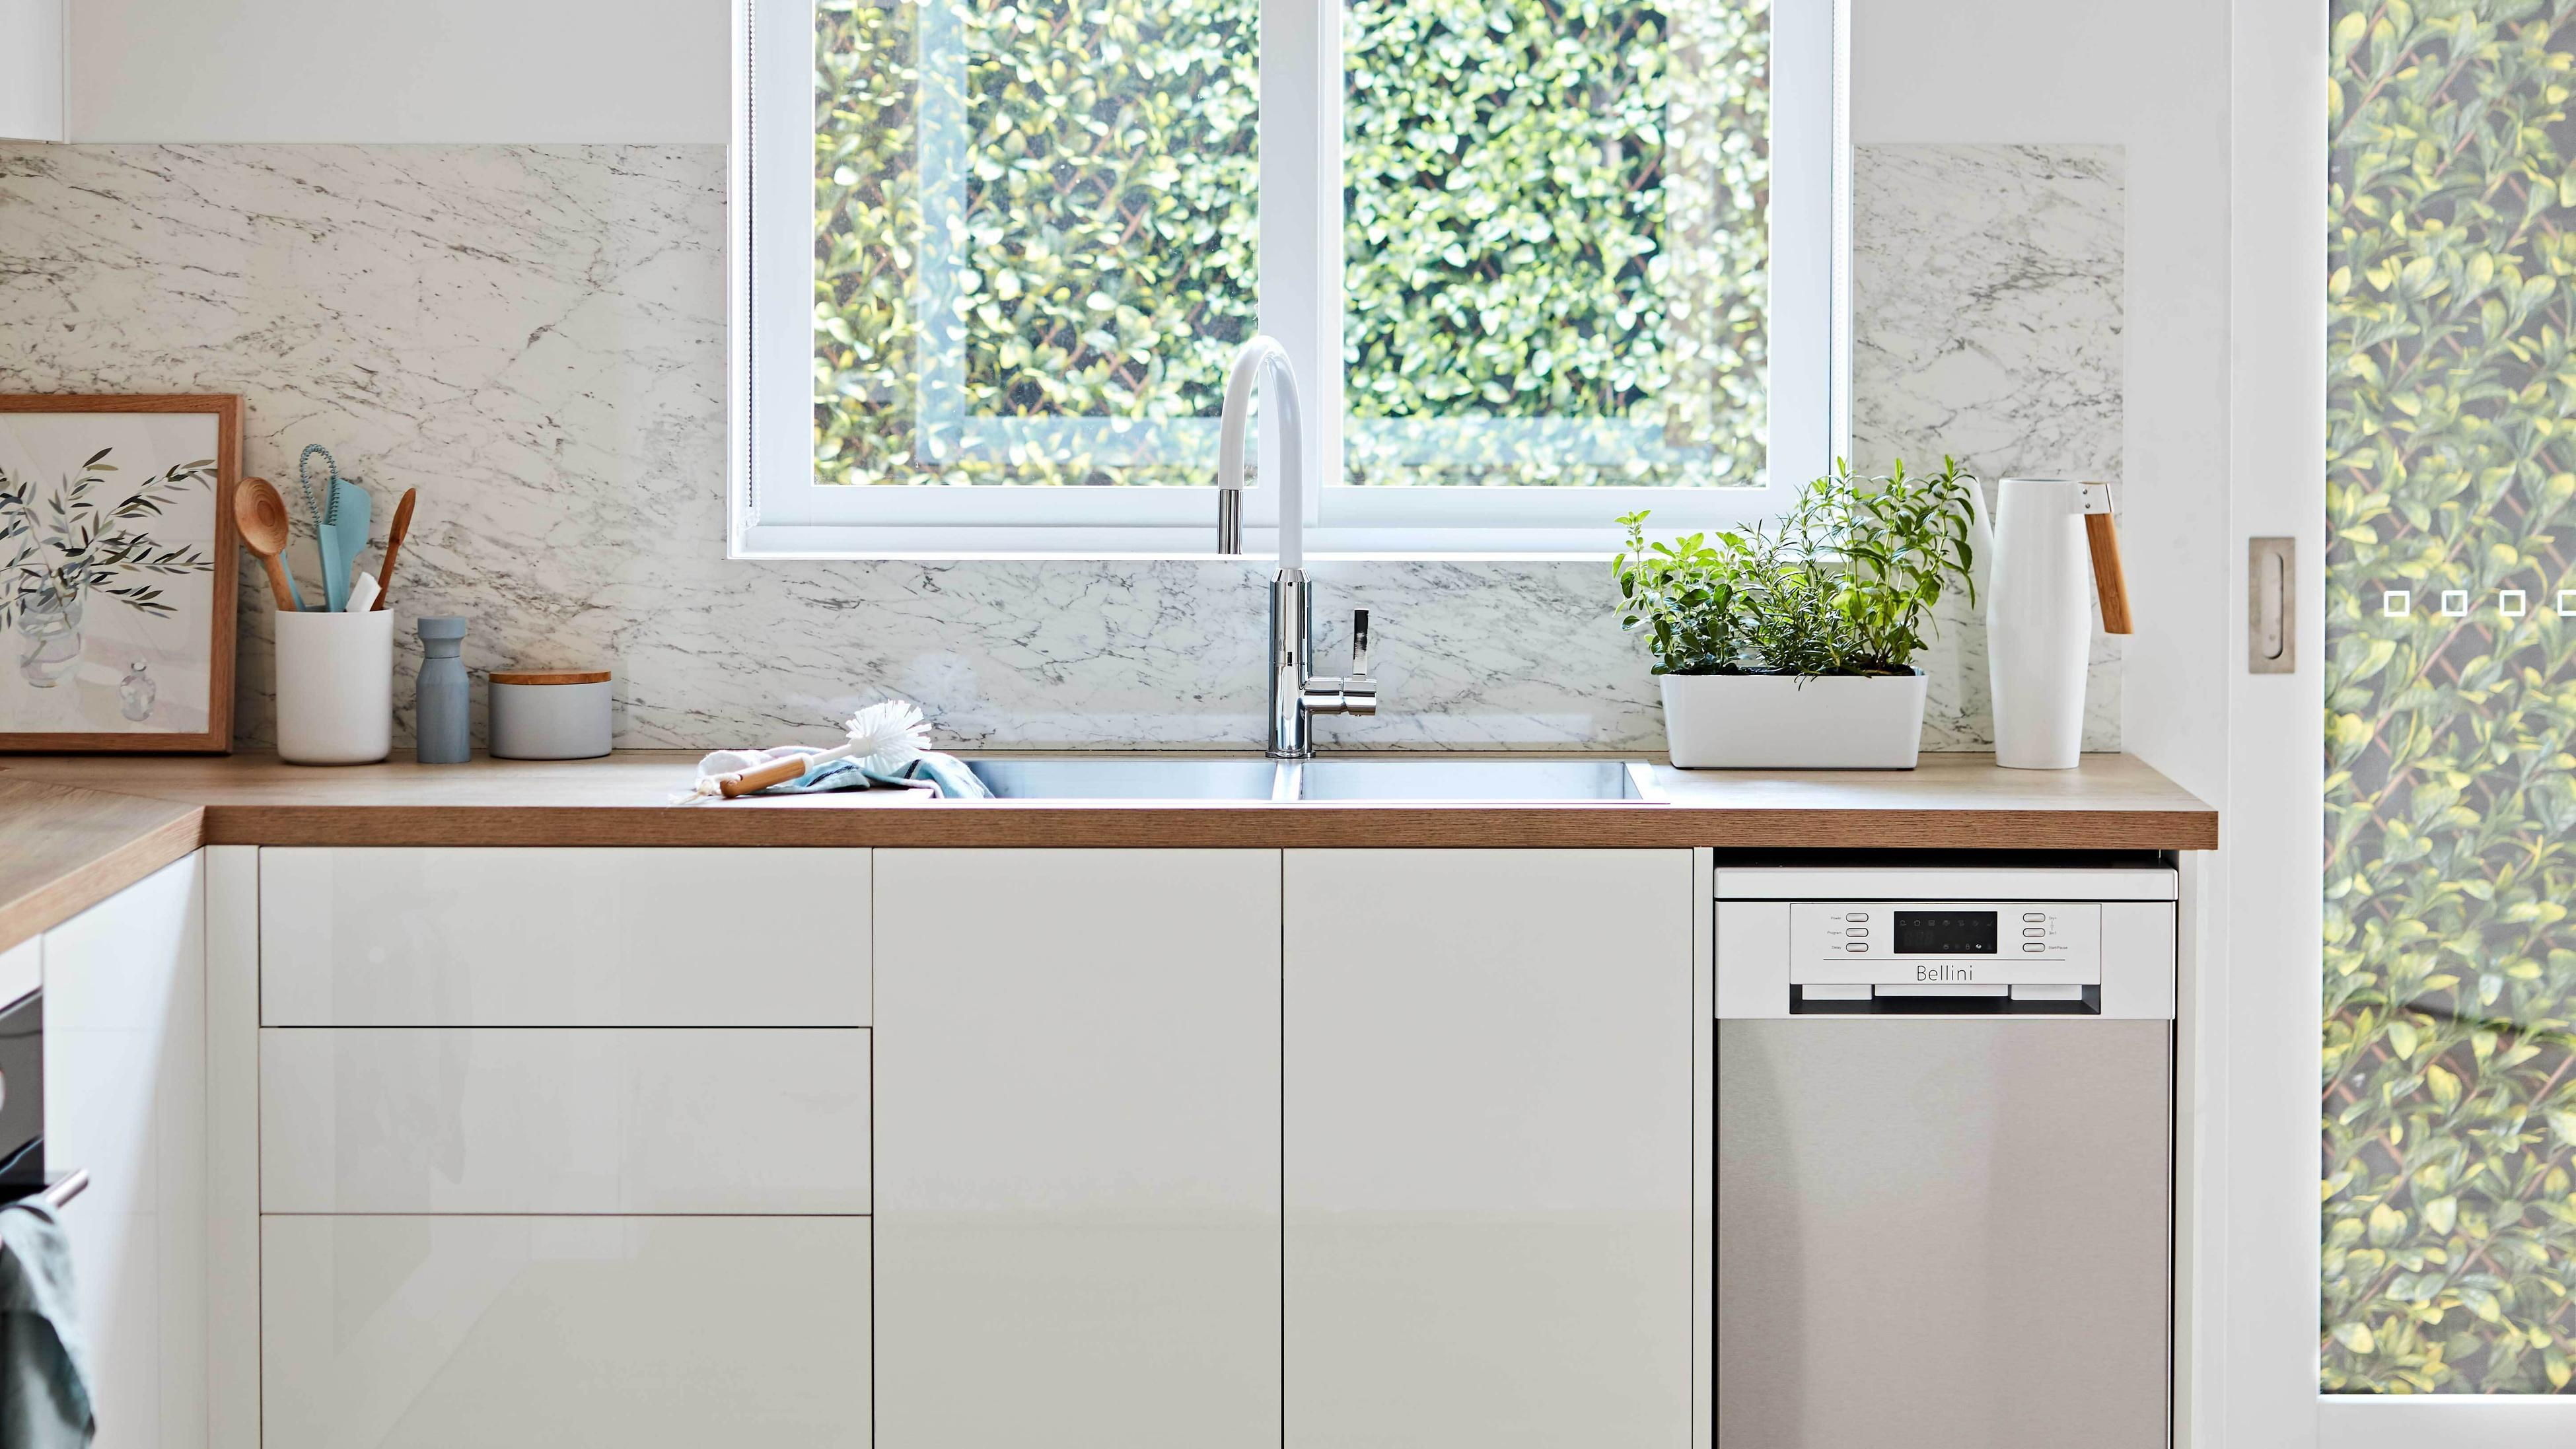 Scandi style kitchen with white cabinetry and timber finishes.